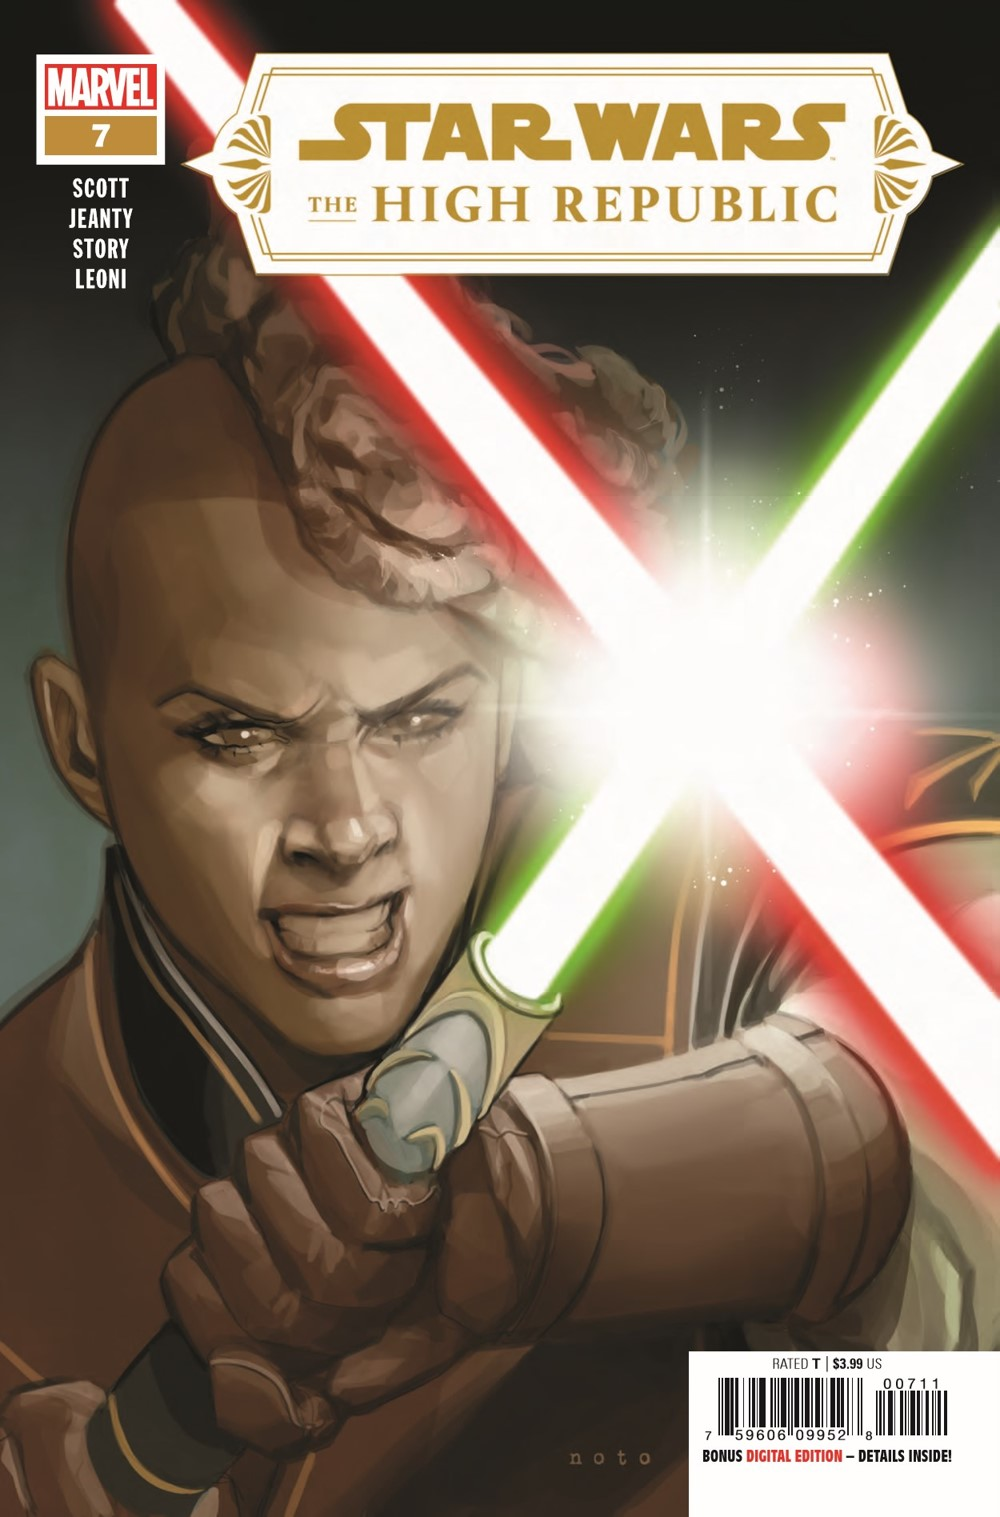 STWHIGHREP2020007_Preview-1 ComicList Previews: STAR WARS THE HIGH REPUBLIC #7